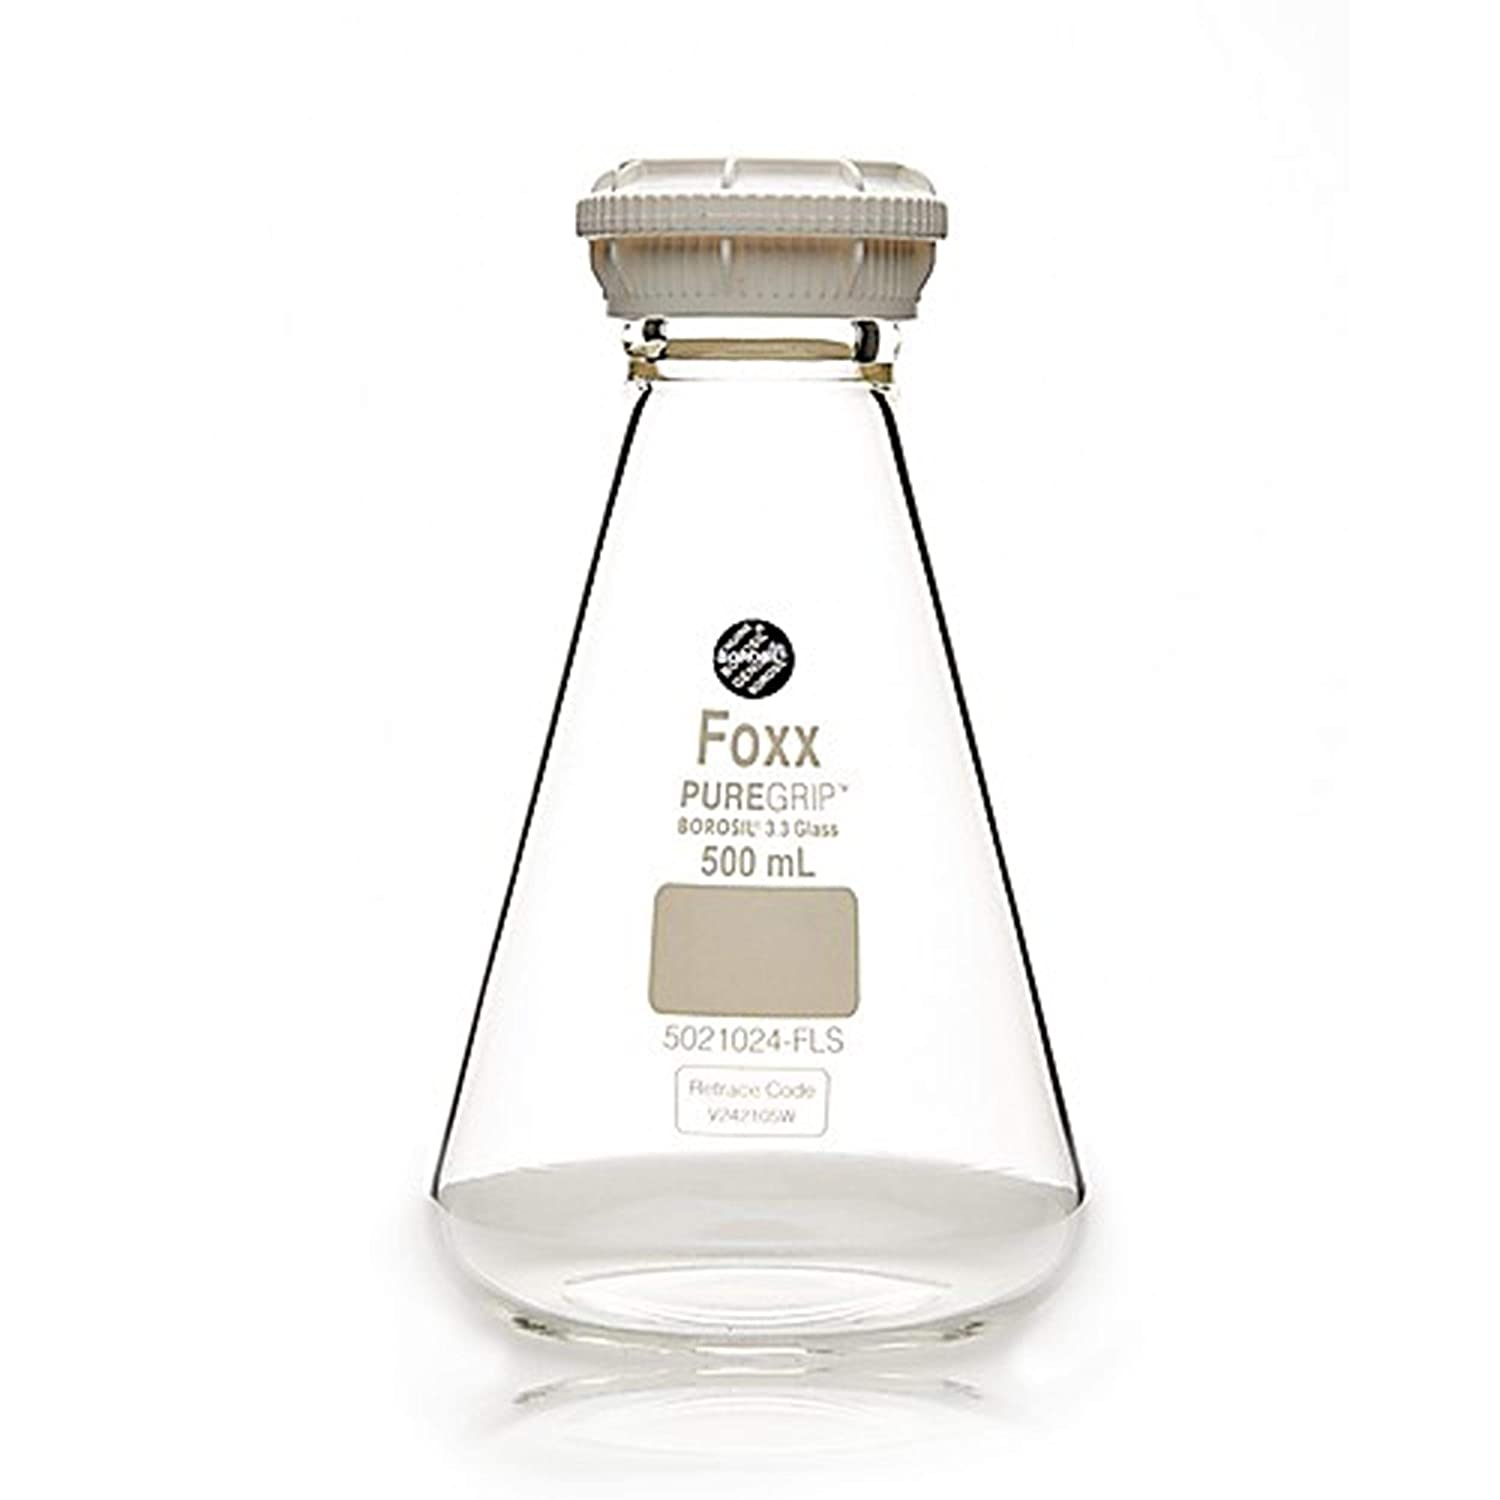 Foxx Life Sciences 5021024-FLS PUREGRIP Borosilicate Glass 3.3 Erlenmeyer Flask with GL45 Screw Cap and Pouring Ring, Clear, 500 ml Capacity (Pack of 10)